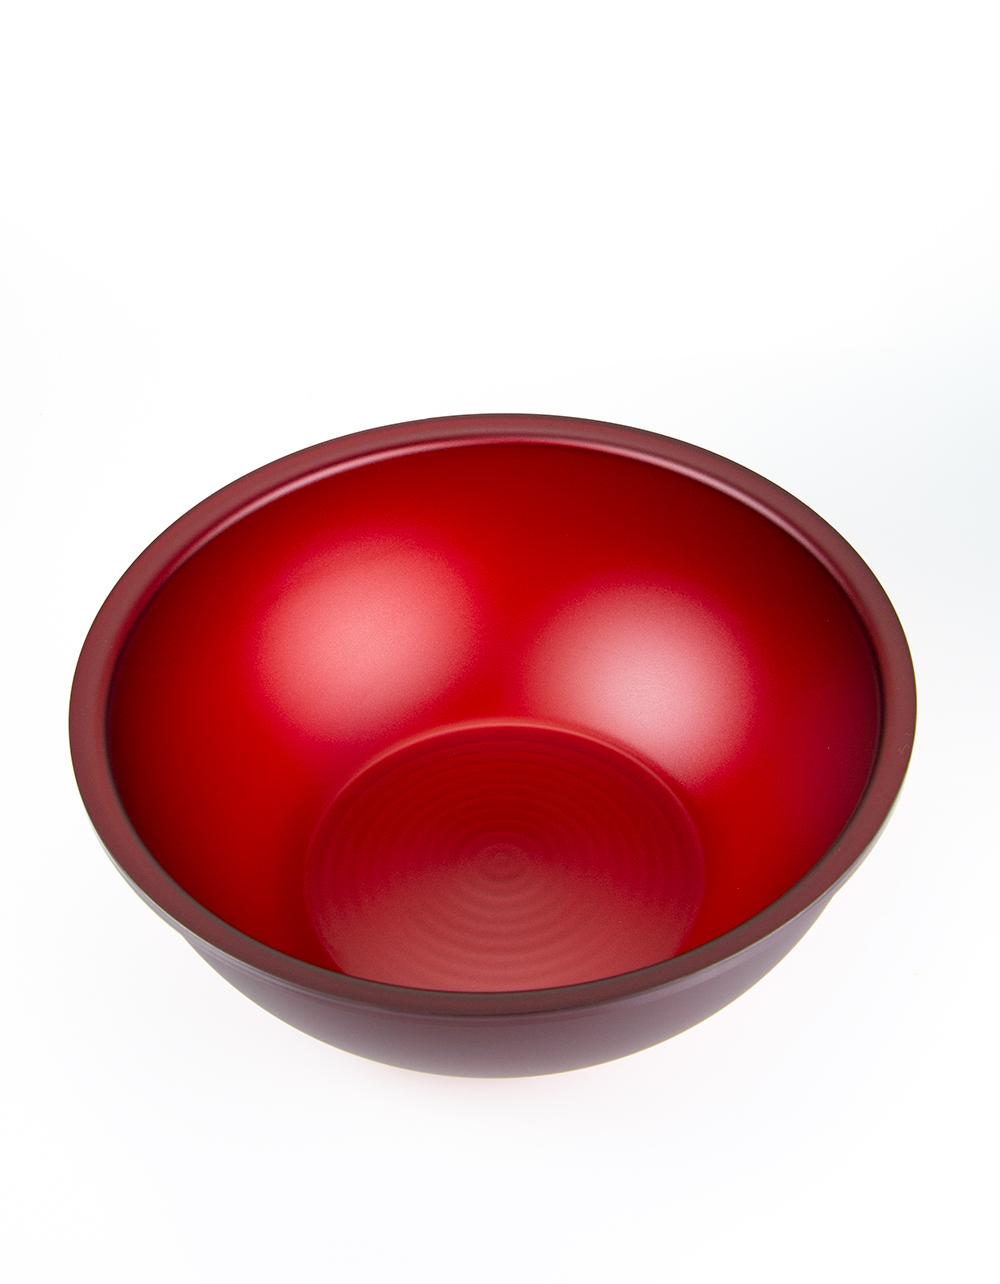 Salad Bowl Acrylic Glass - Cherry Red 29.5cm